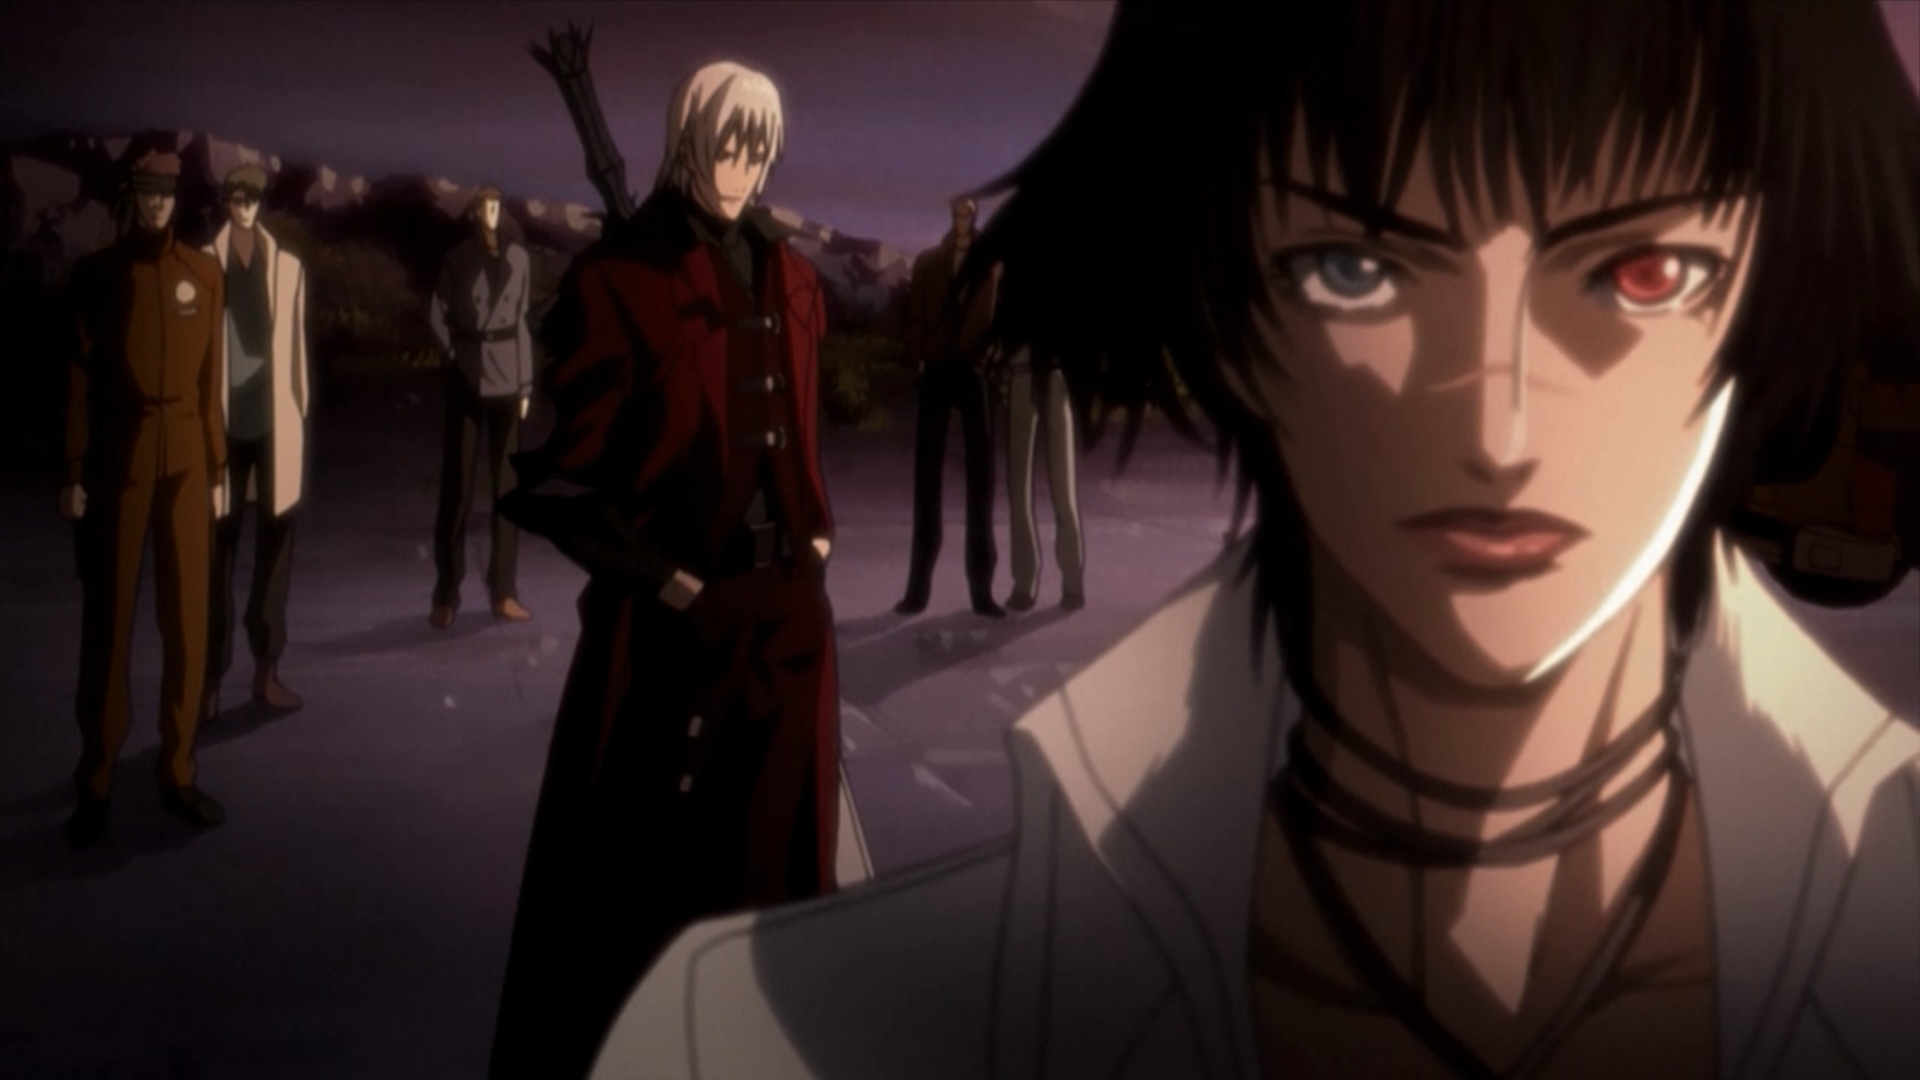 Lady %26 Dante   Devil May Cry anime Episode 2 Movie Review: Devil May Cry Animated Series